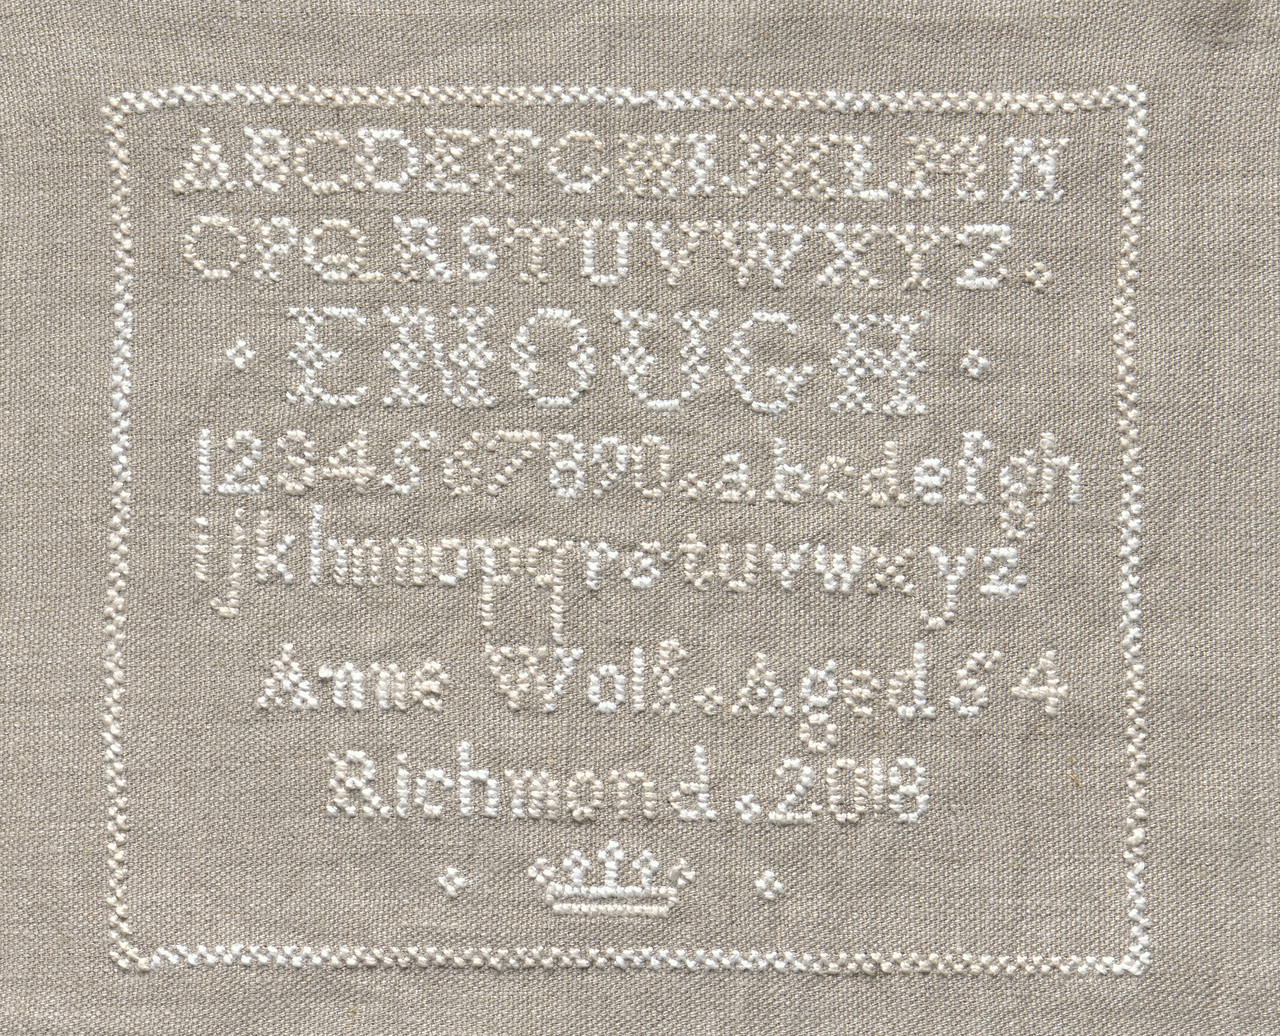 Stitched wording on linen